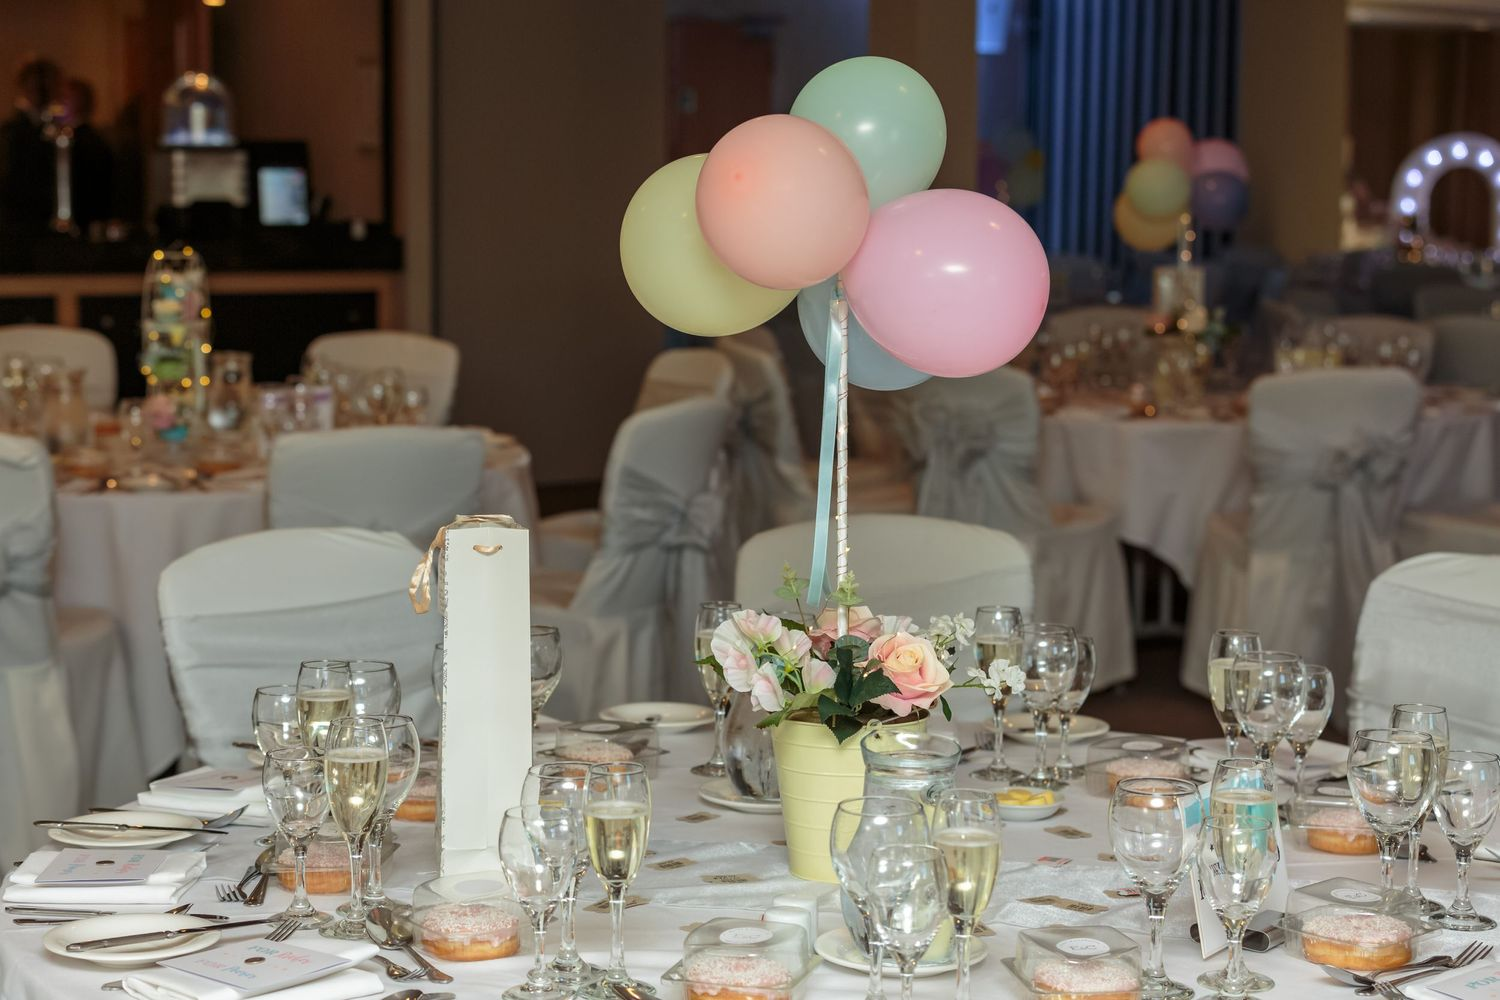 fairground theme continues inside for the wedding reception balloons and fairy cake Ferris wheels on the tables